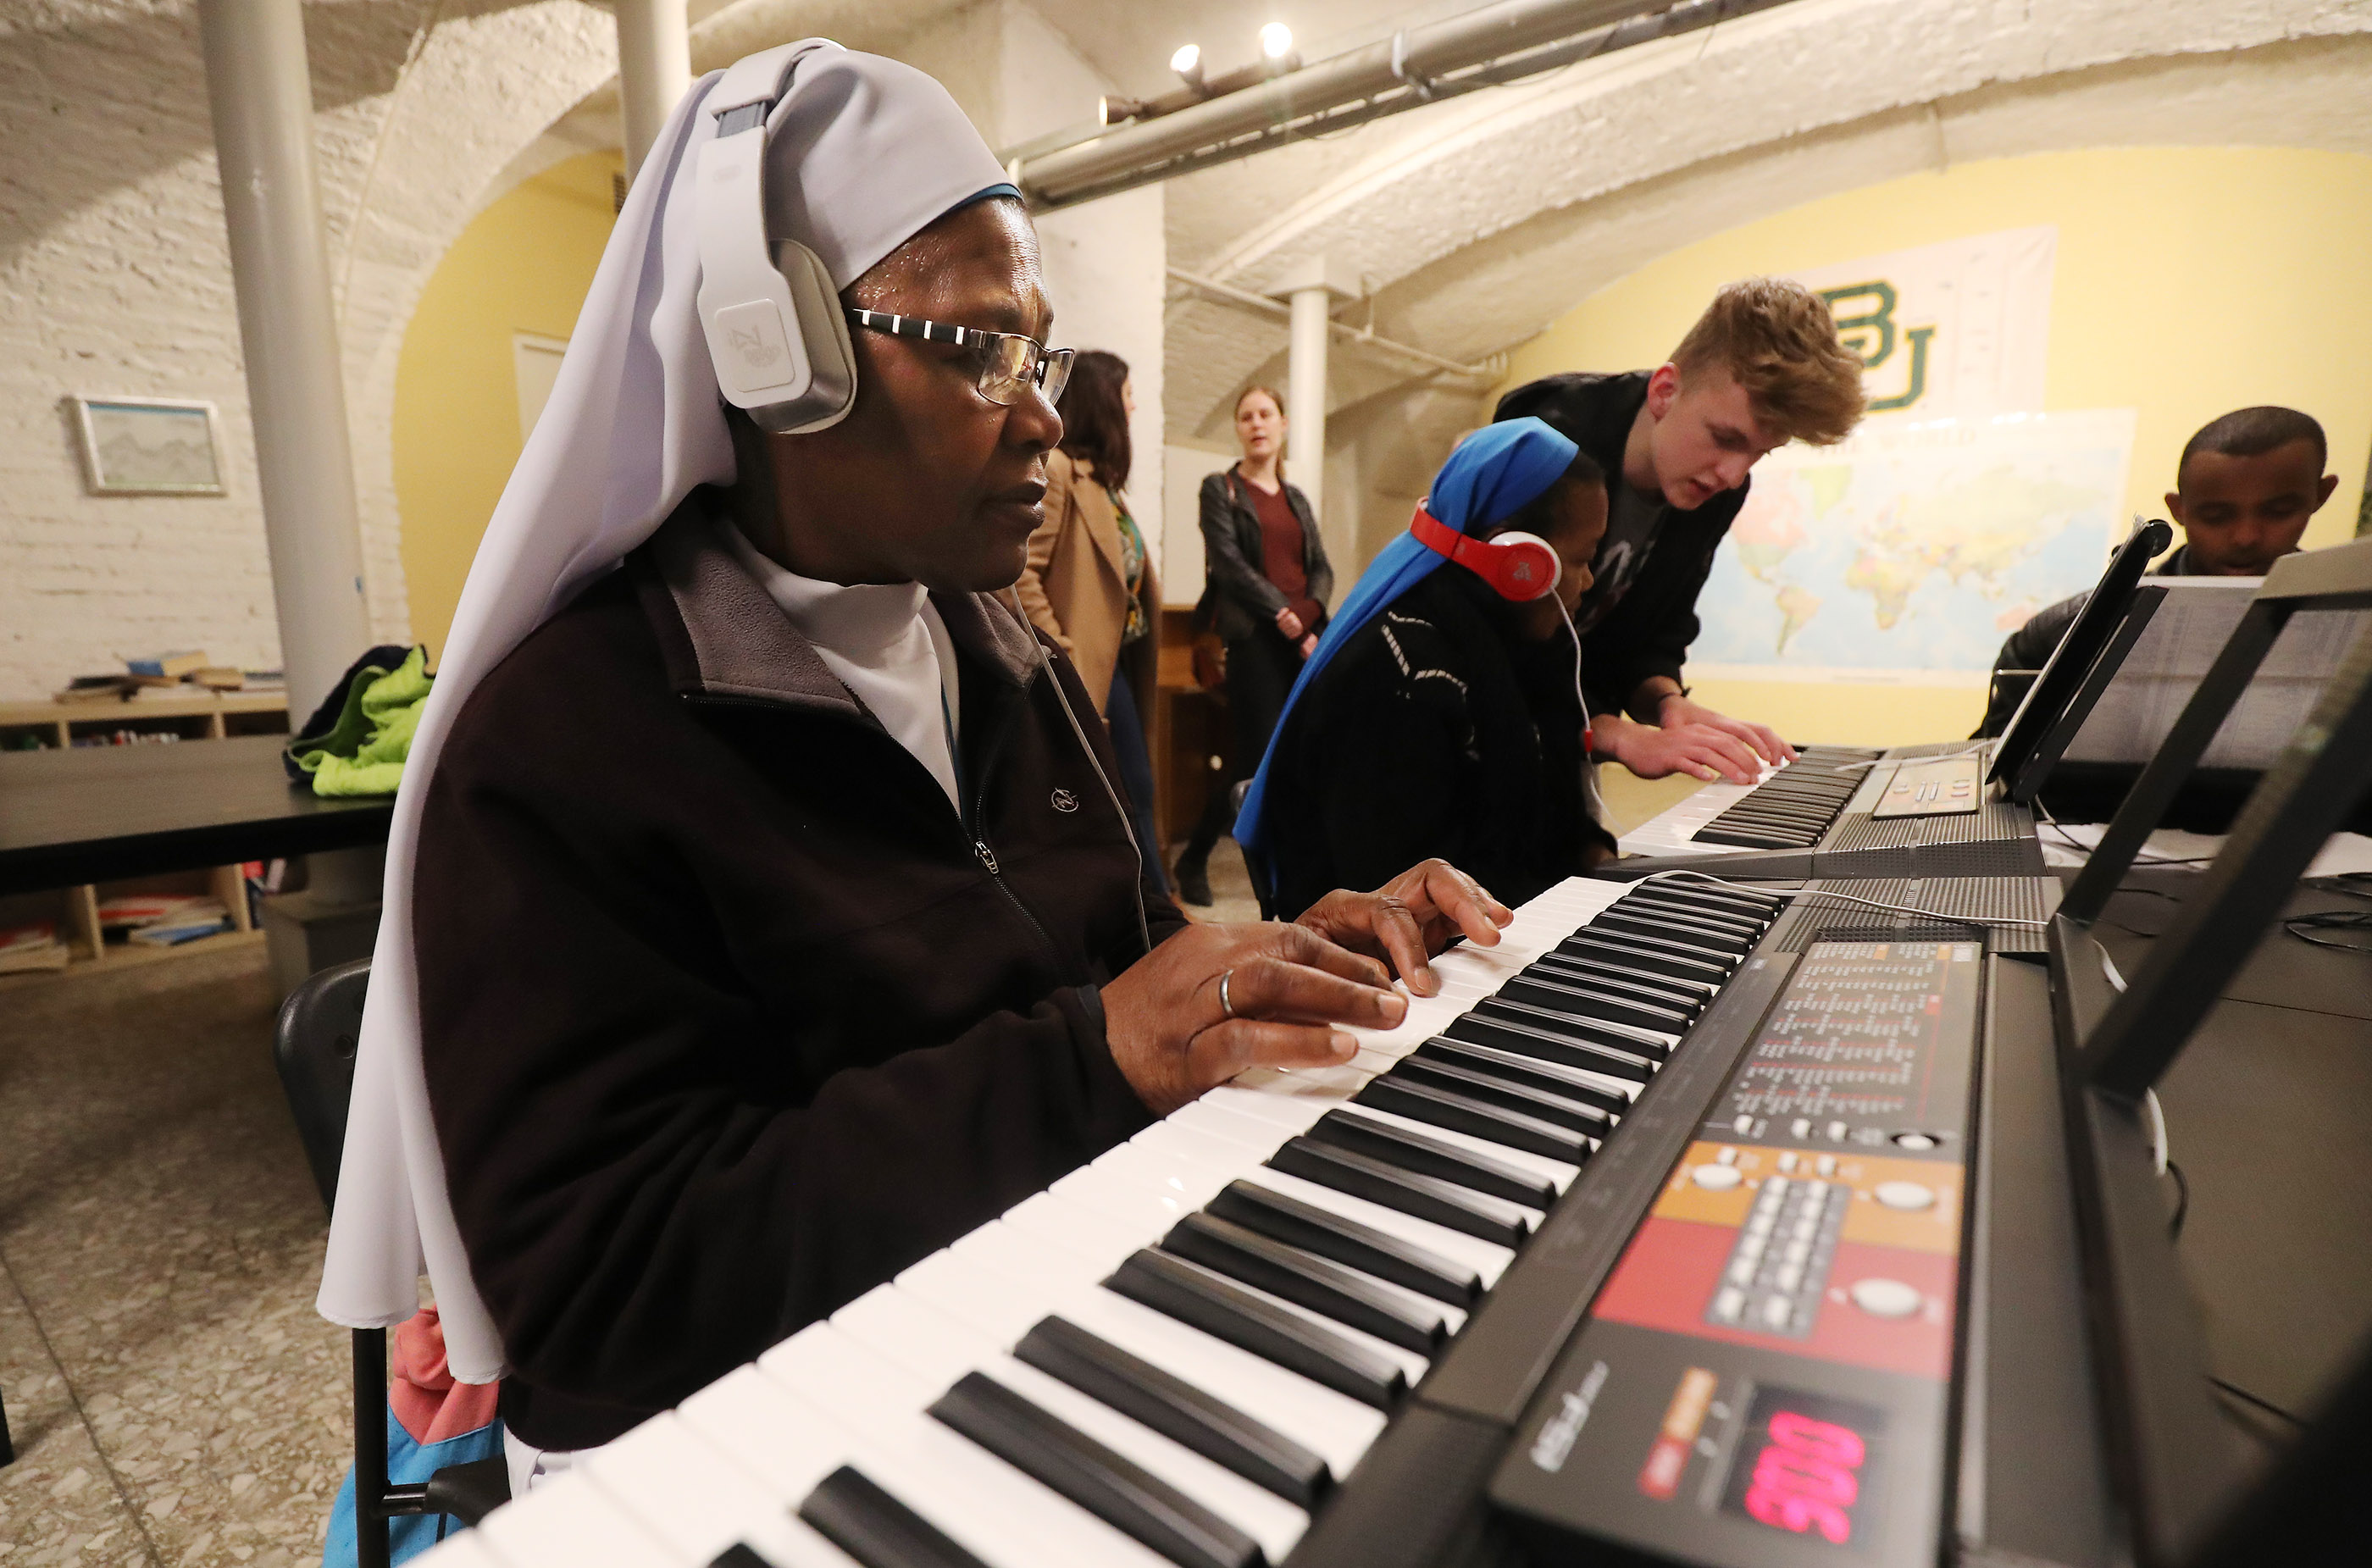 A Catholic Nun Sister Margaret practices piano during a class taught by Josh Perego, a local Latter-day Saint.